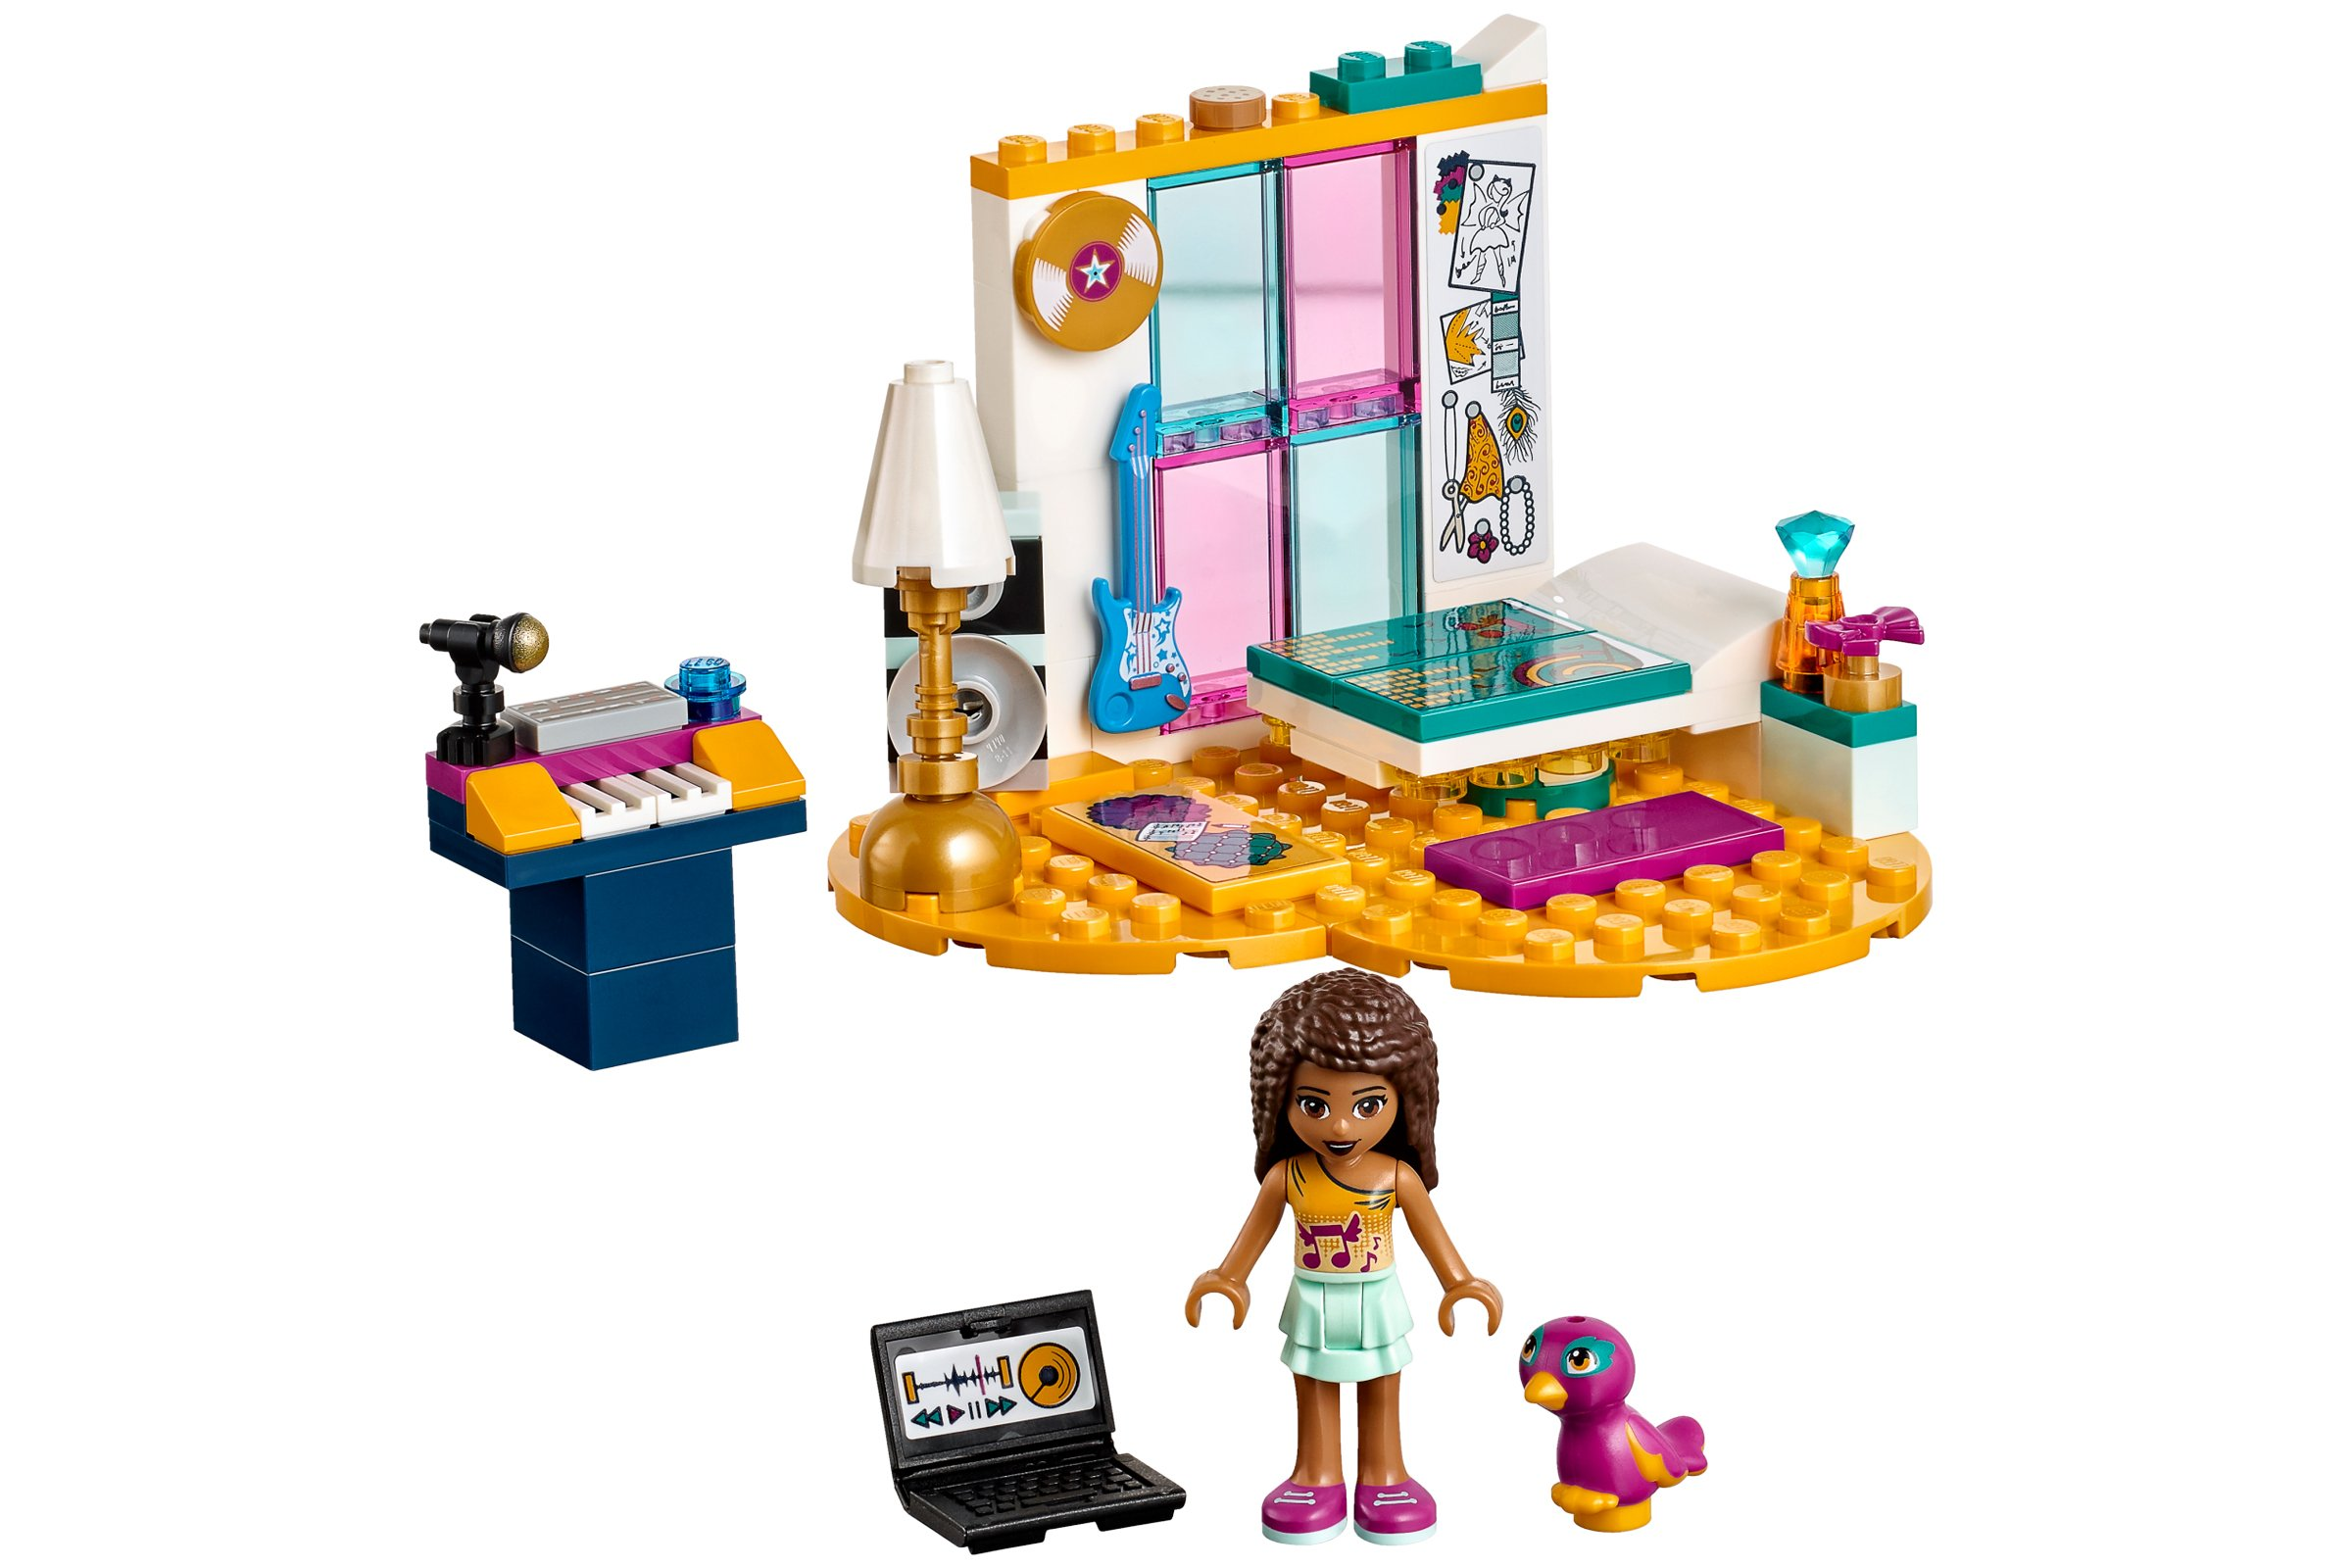 Lego Friends 41341 Andreas Bedroom House And Garden Toys Lego